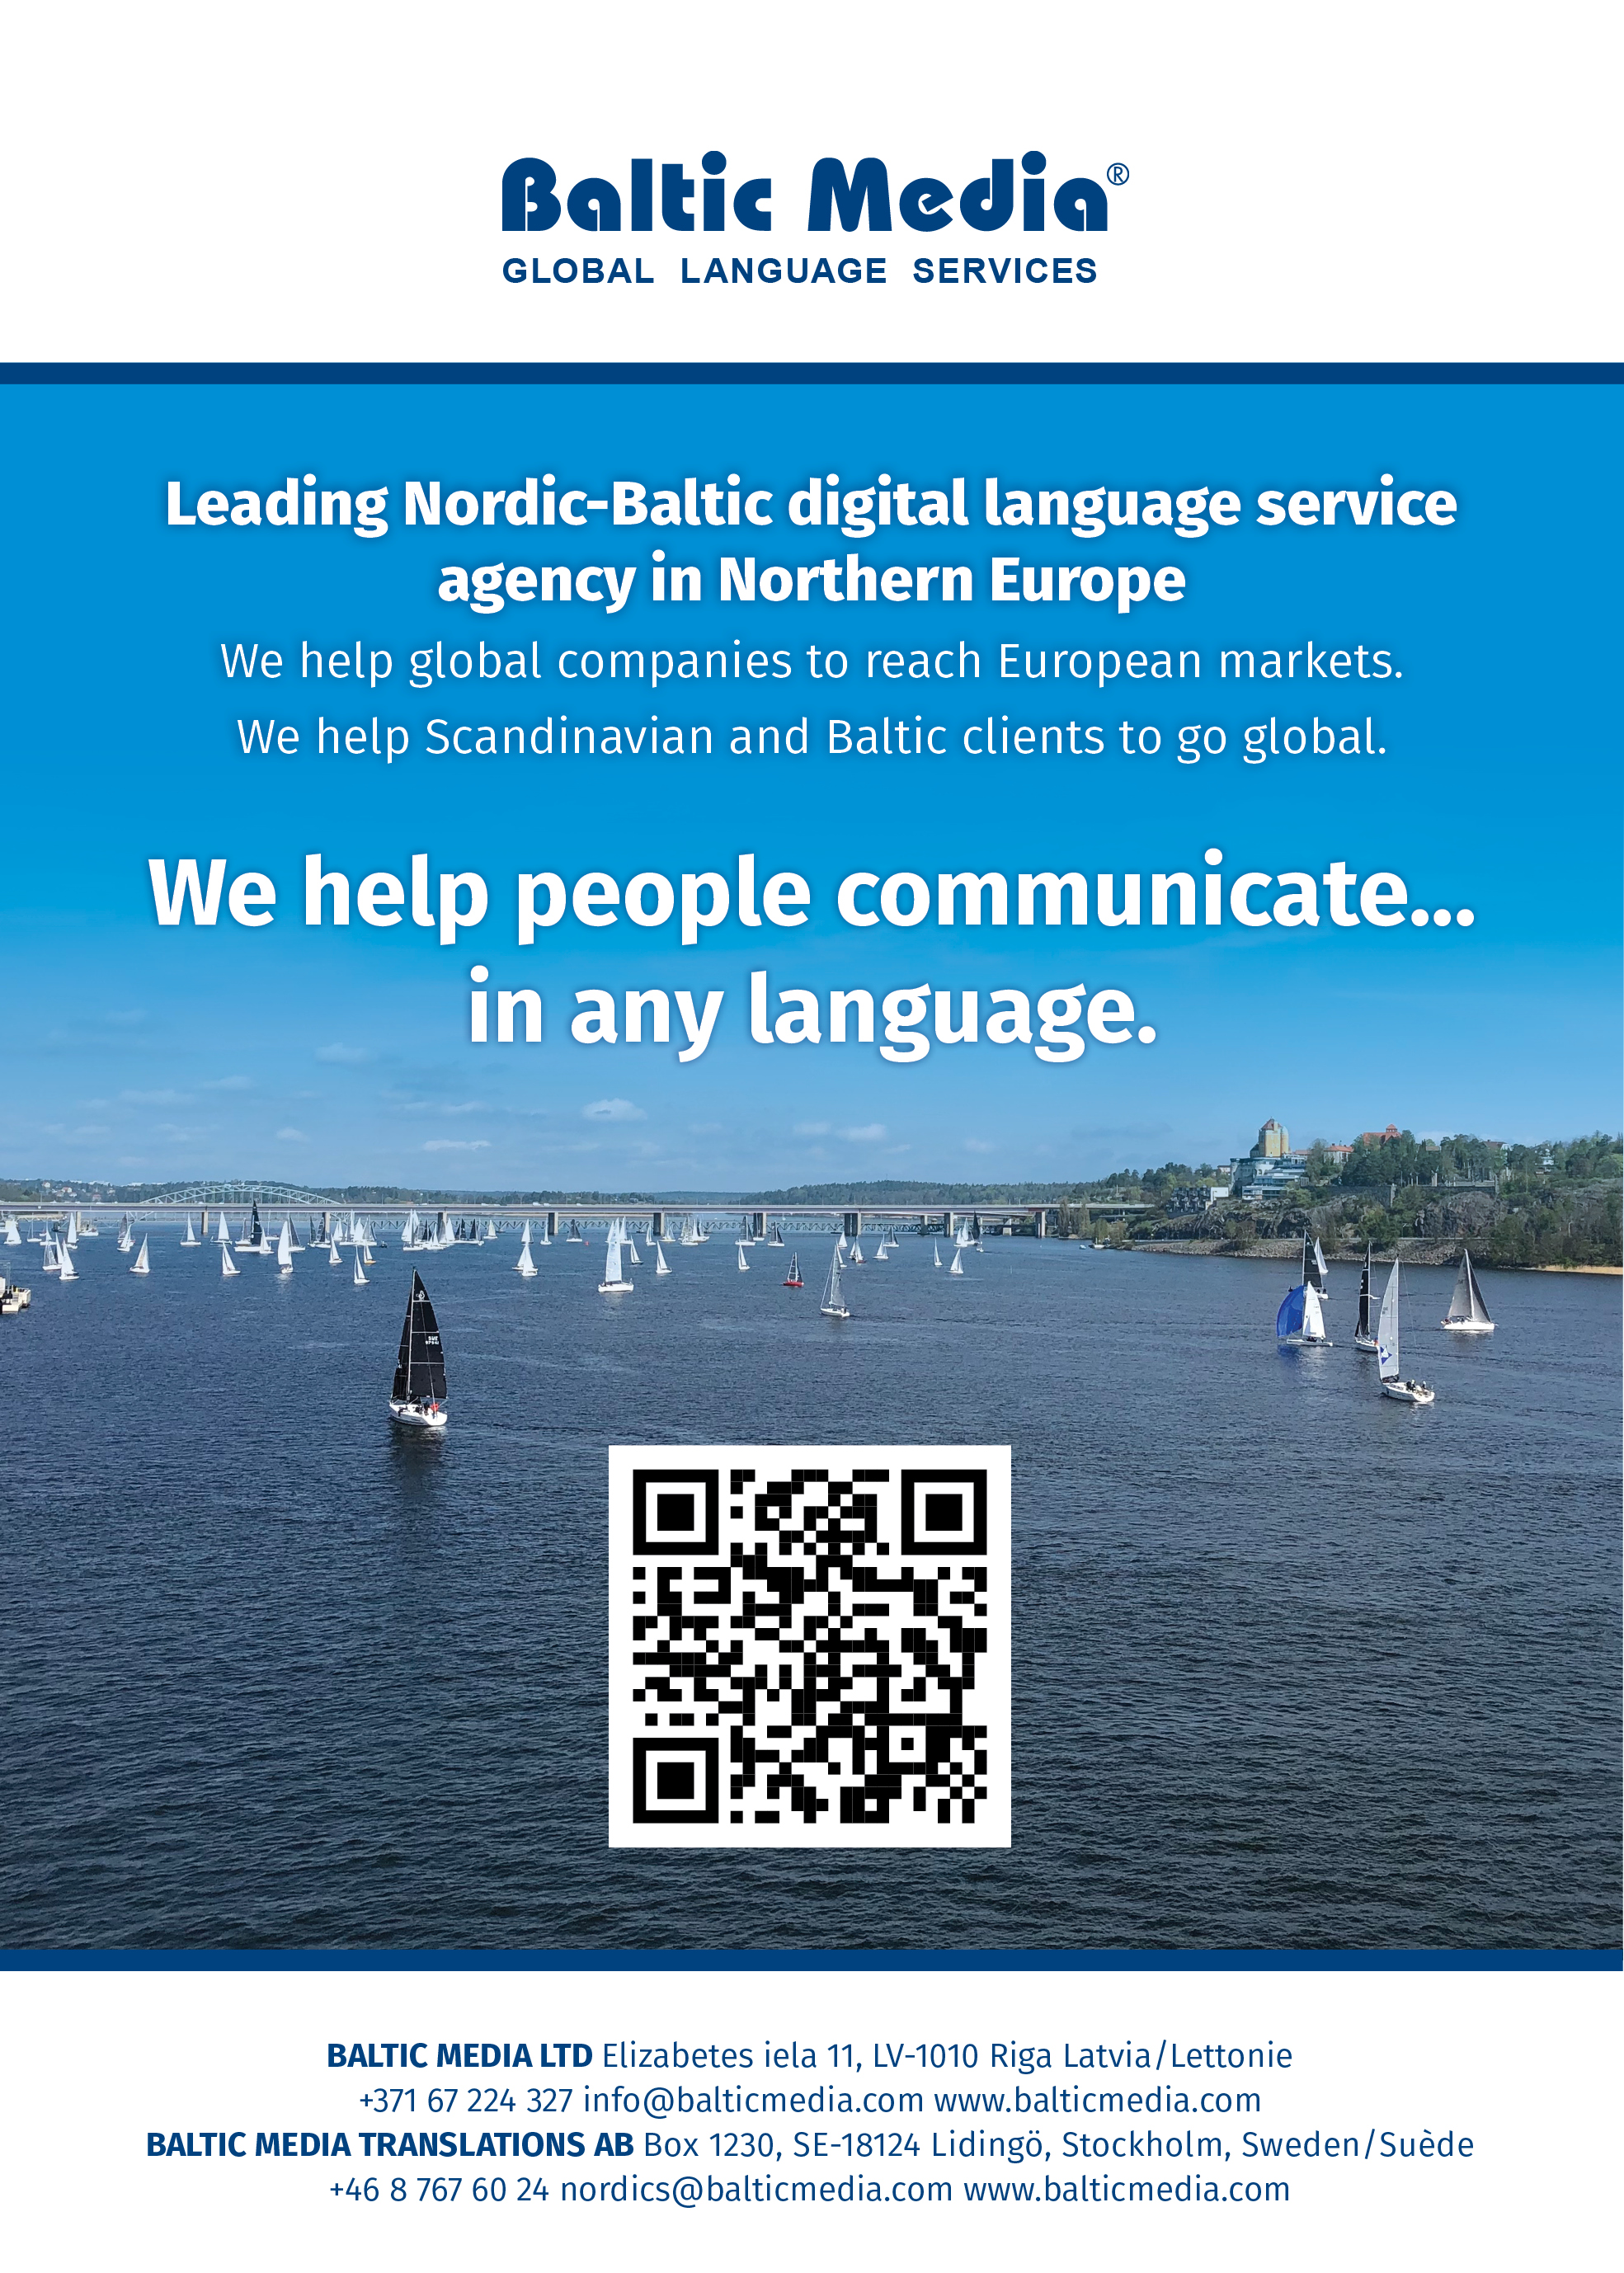 Proofreading and Editing Services | Nordic-Baltic Translation Agency Baltic Media